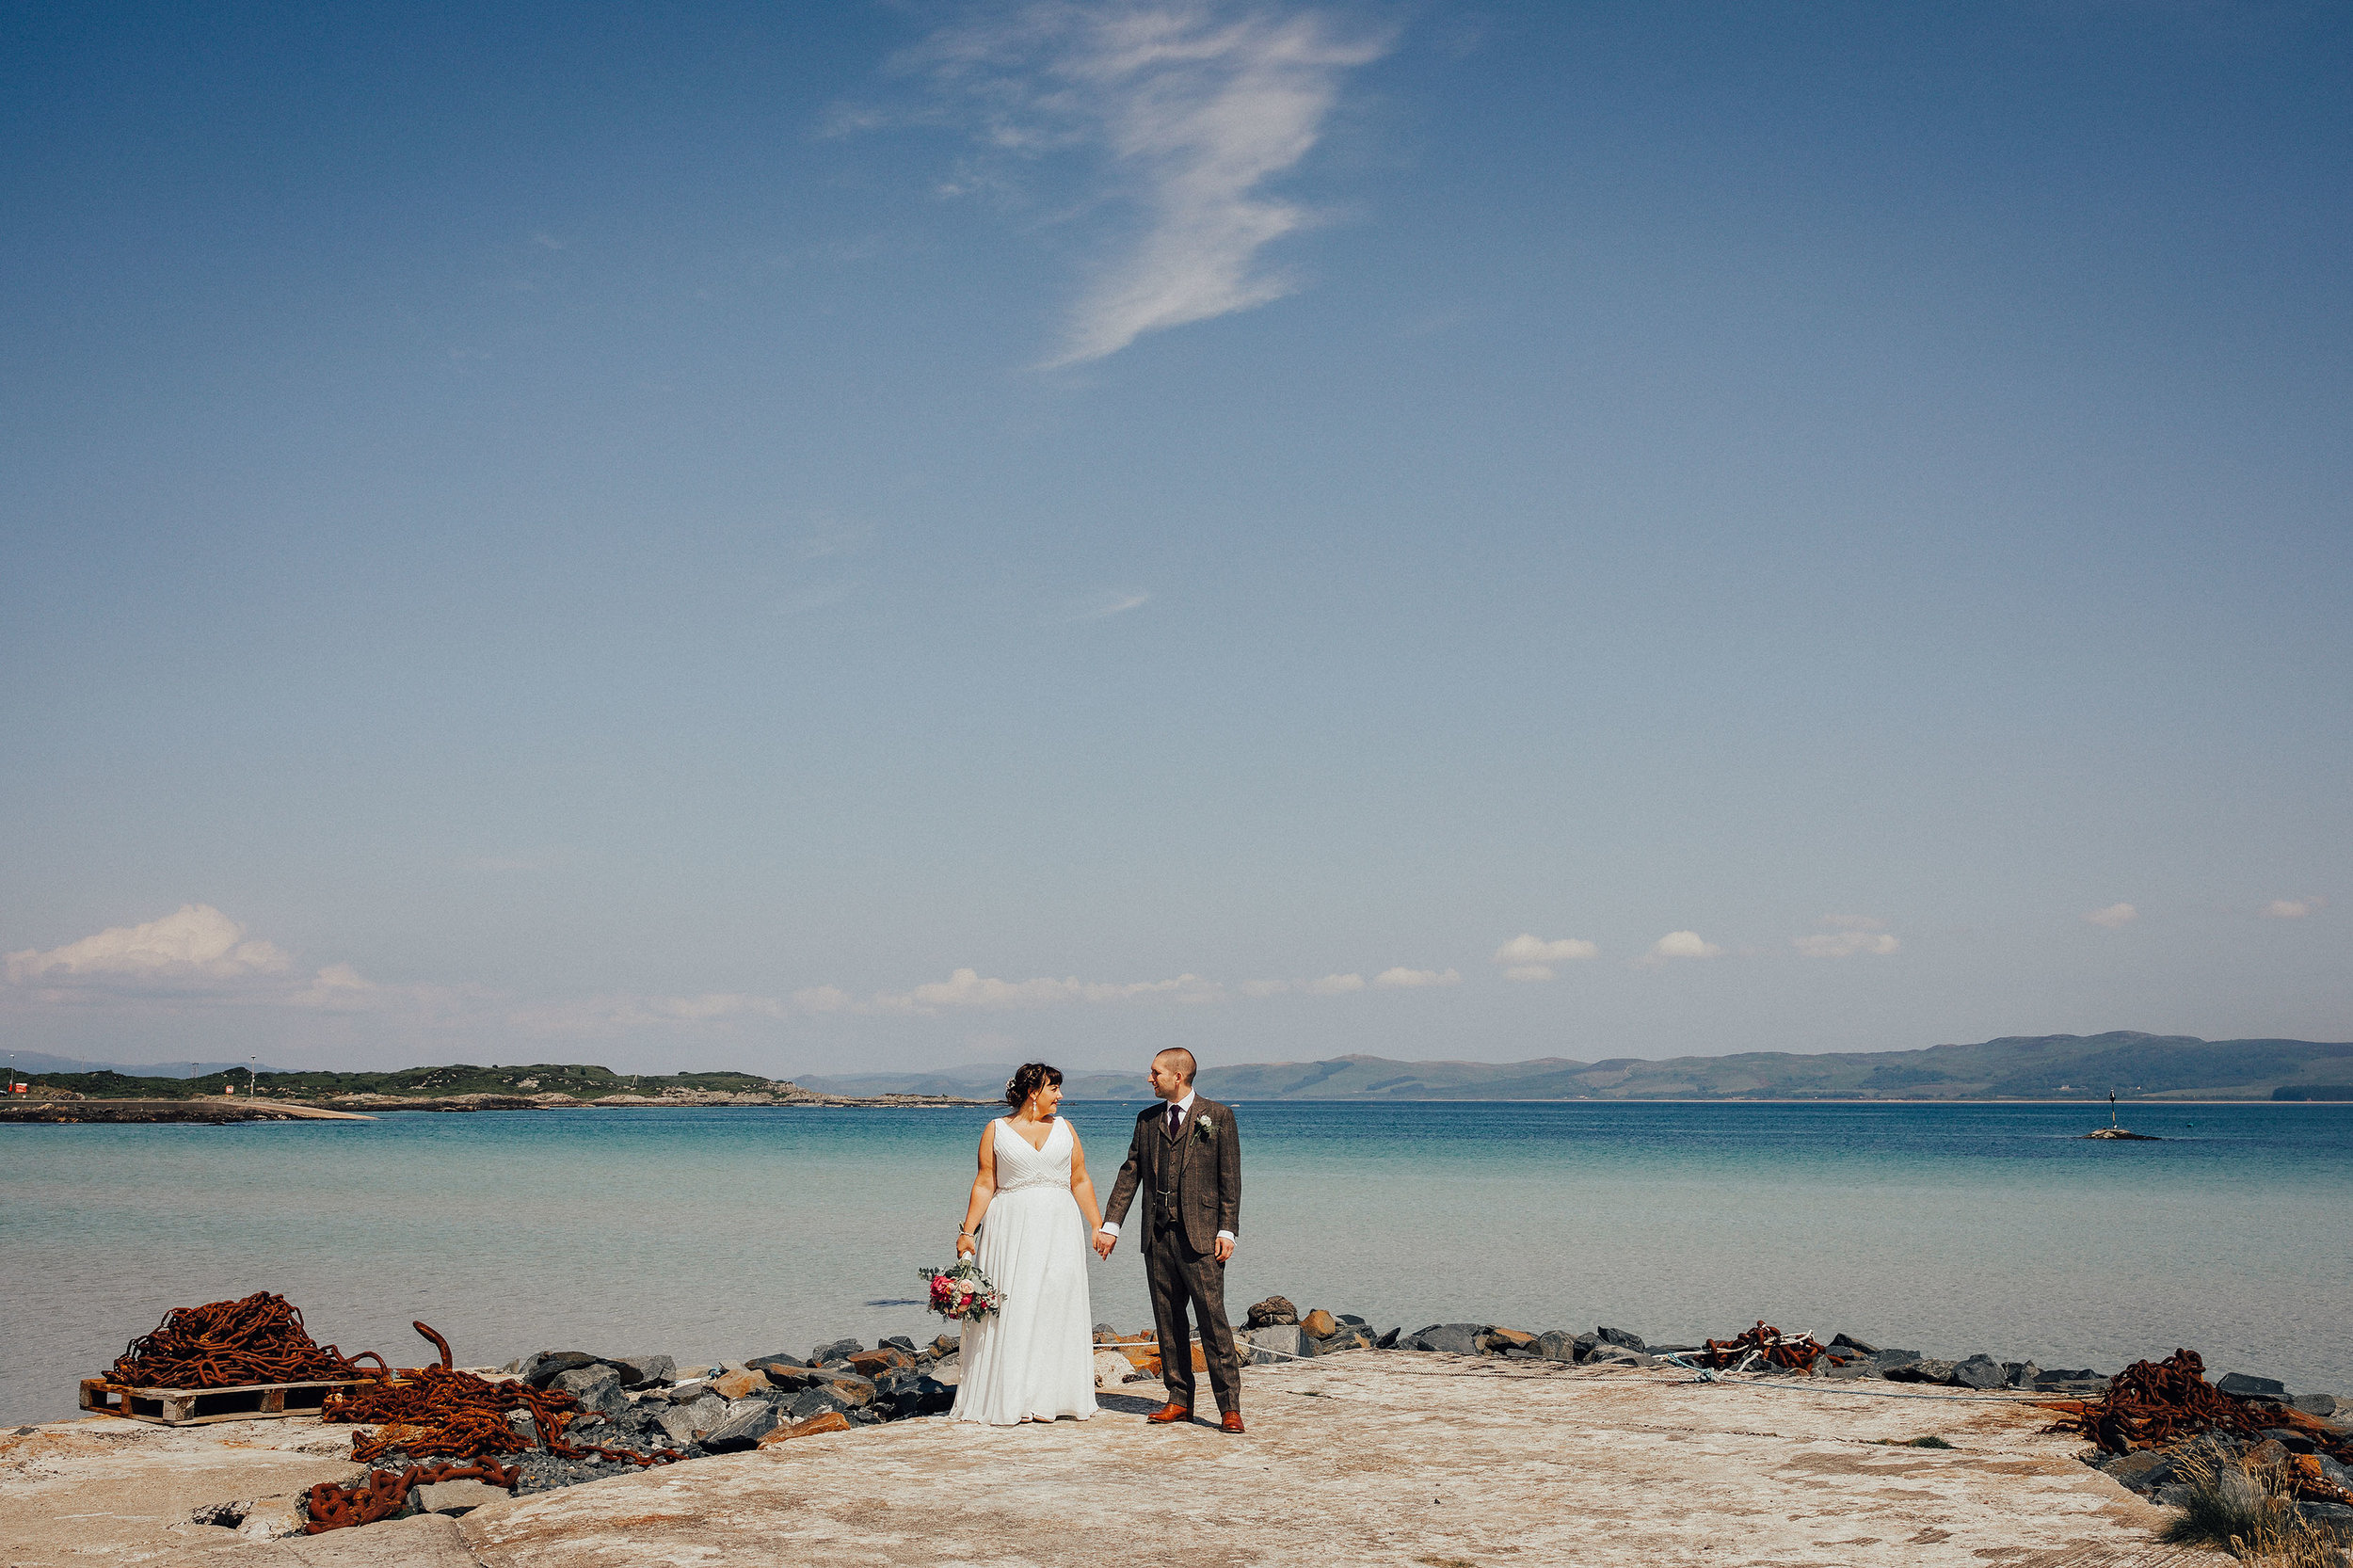 SCOTTISH_ELOPEMENT_PHOTOGRAPHER_PJ_PHILLIPS_PHOTOGRAPHY_5.jpg